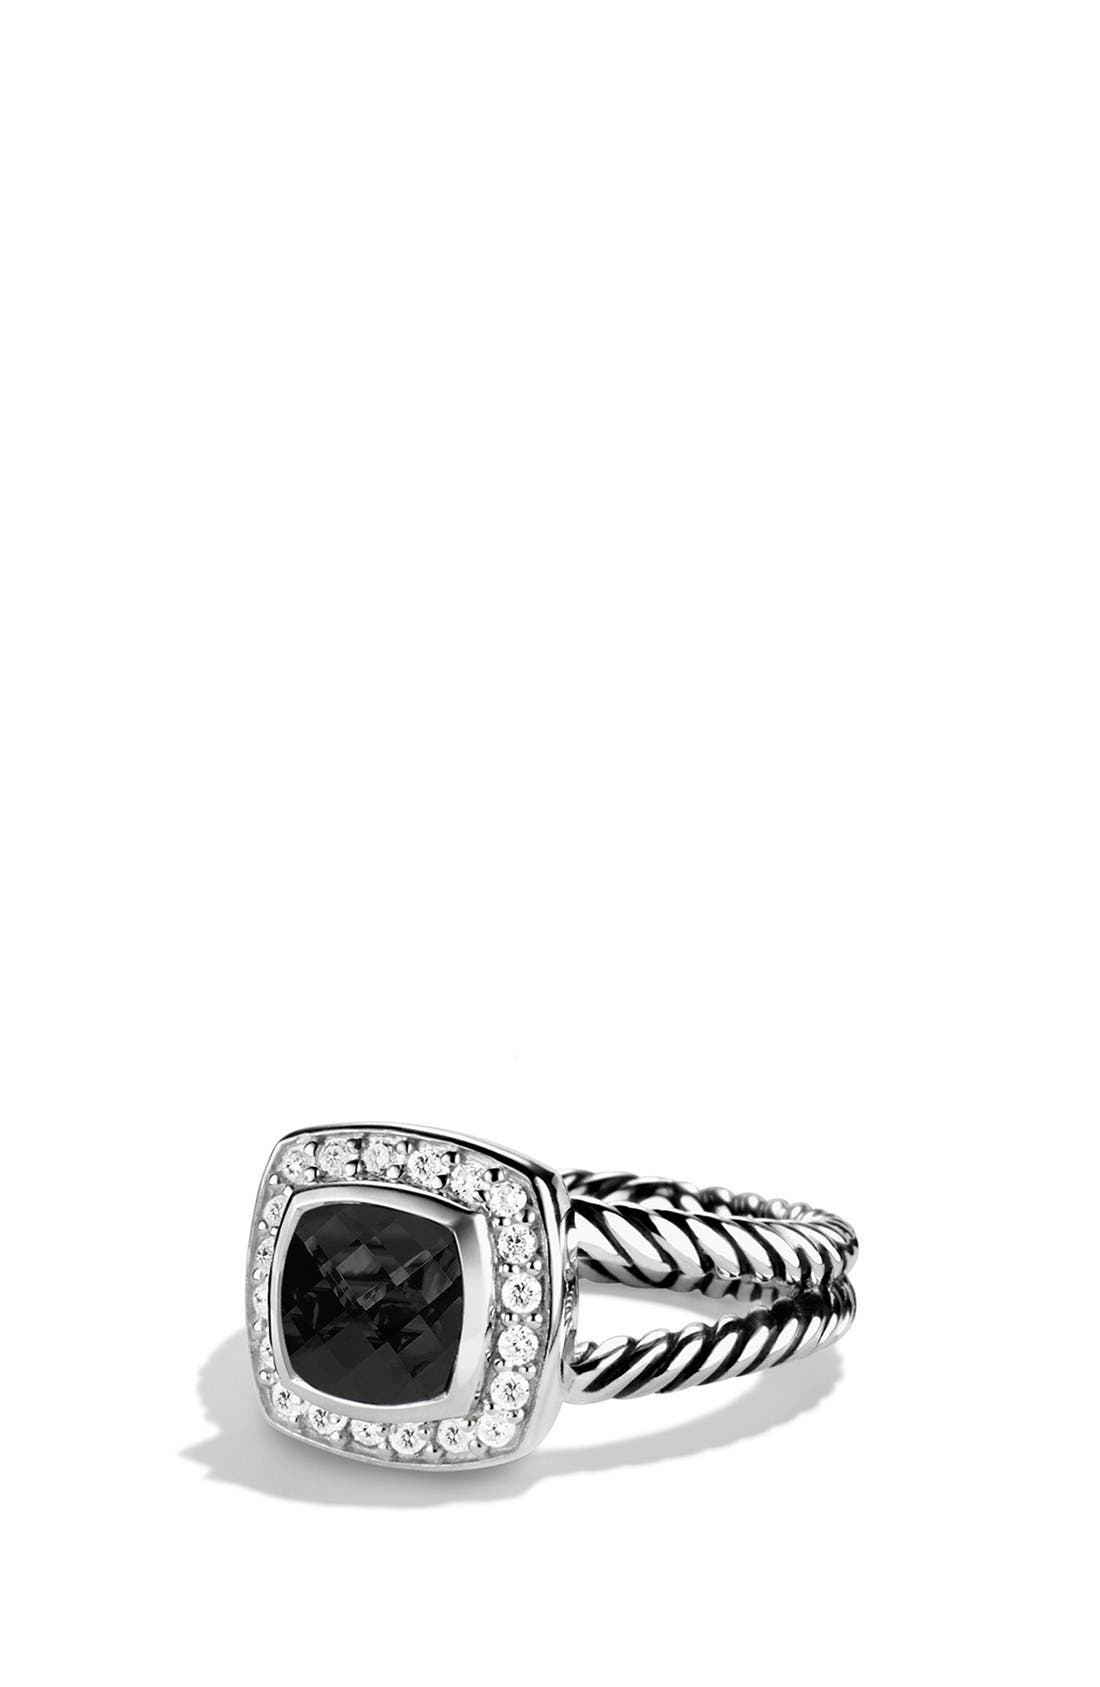 'Albion' Petite Ring with Semiprecious Stone & Diamonds,                         Main,                         color, BLACK ONYX